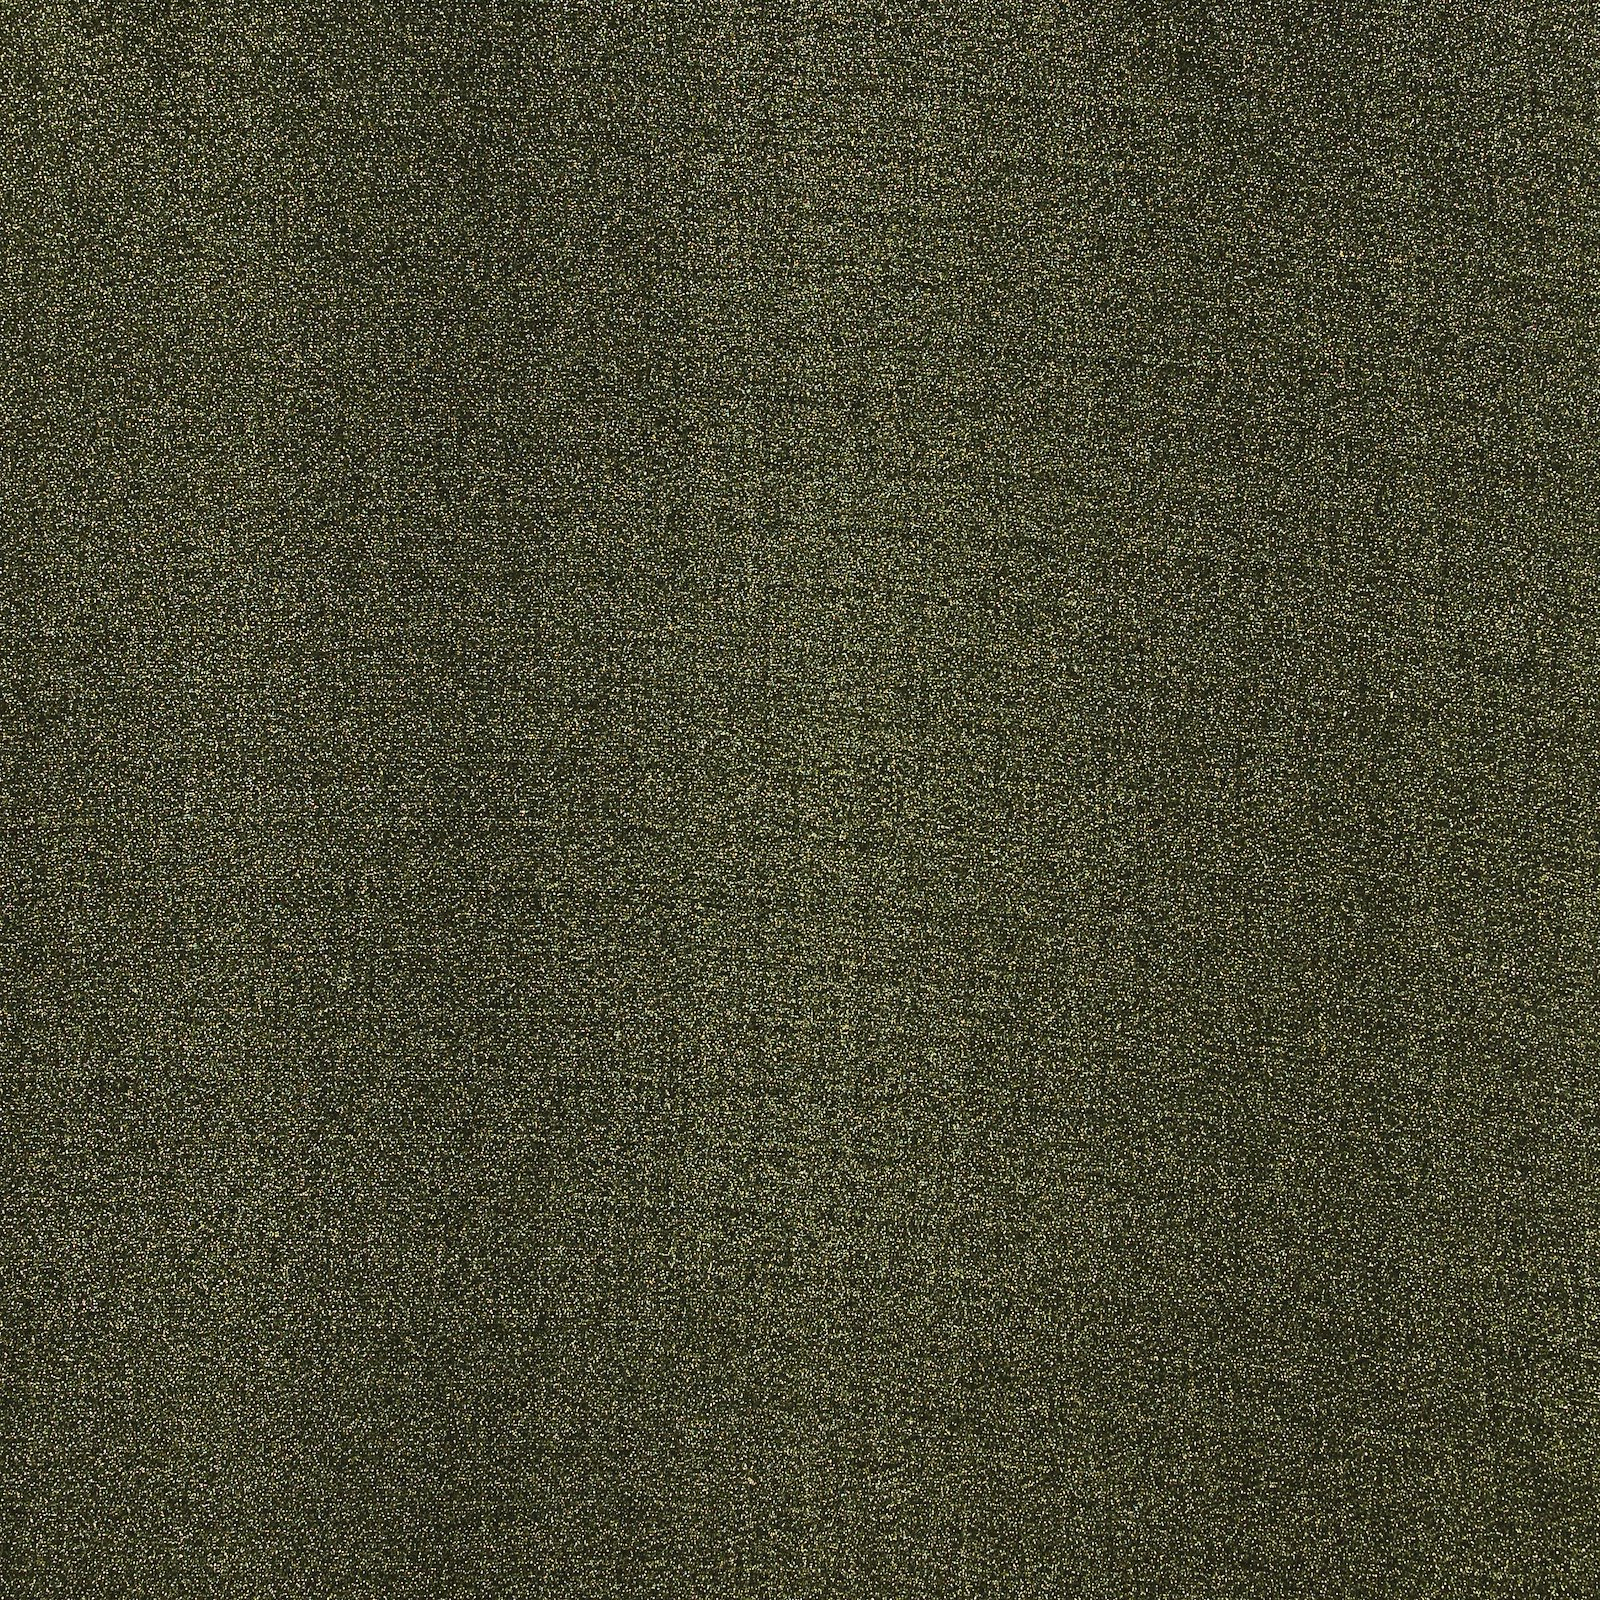 Knit wool boucle black/gold 300205_pack_solid